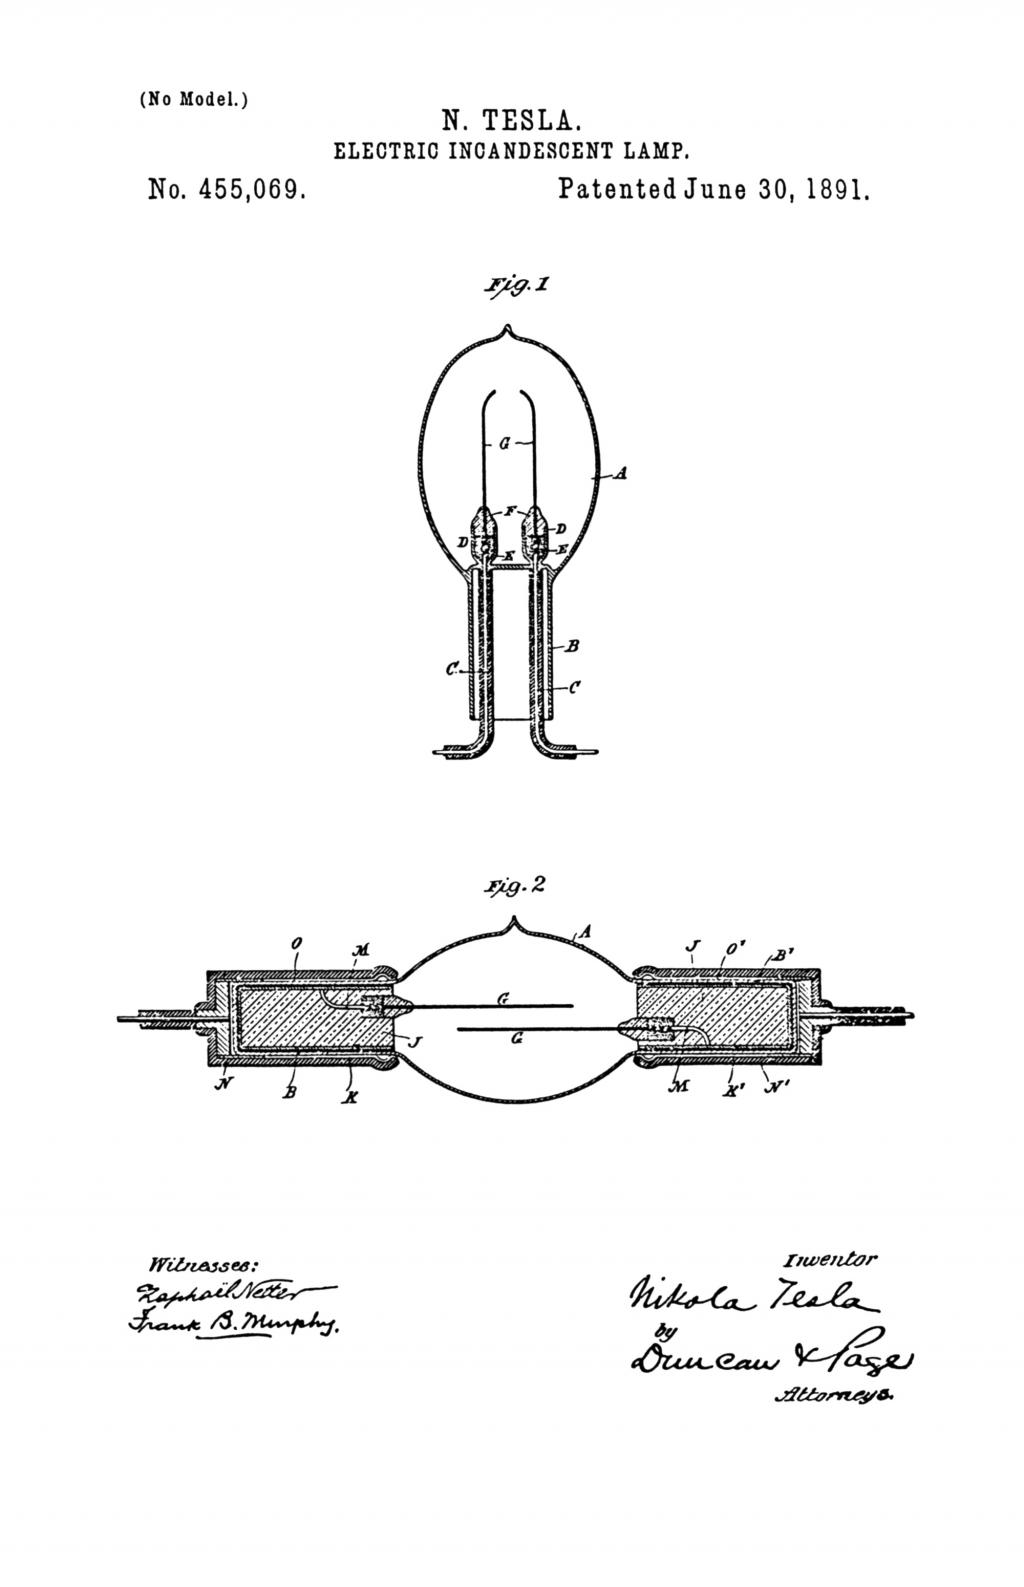 Nikola Tesla Patents on